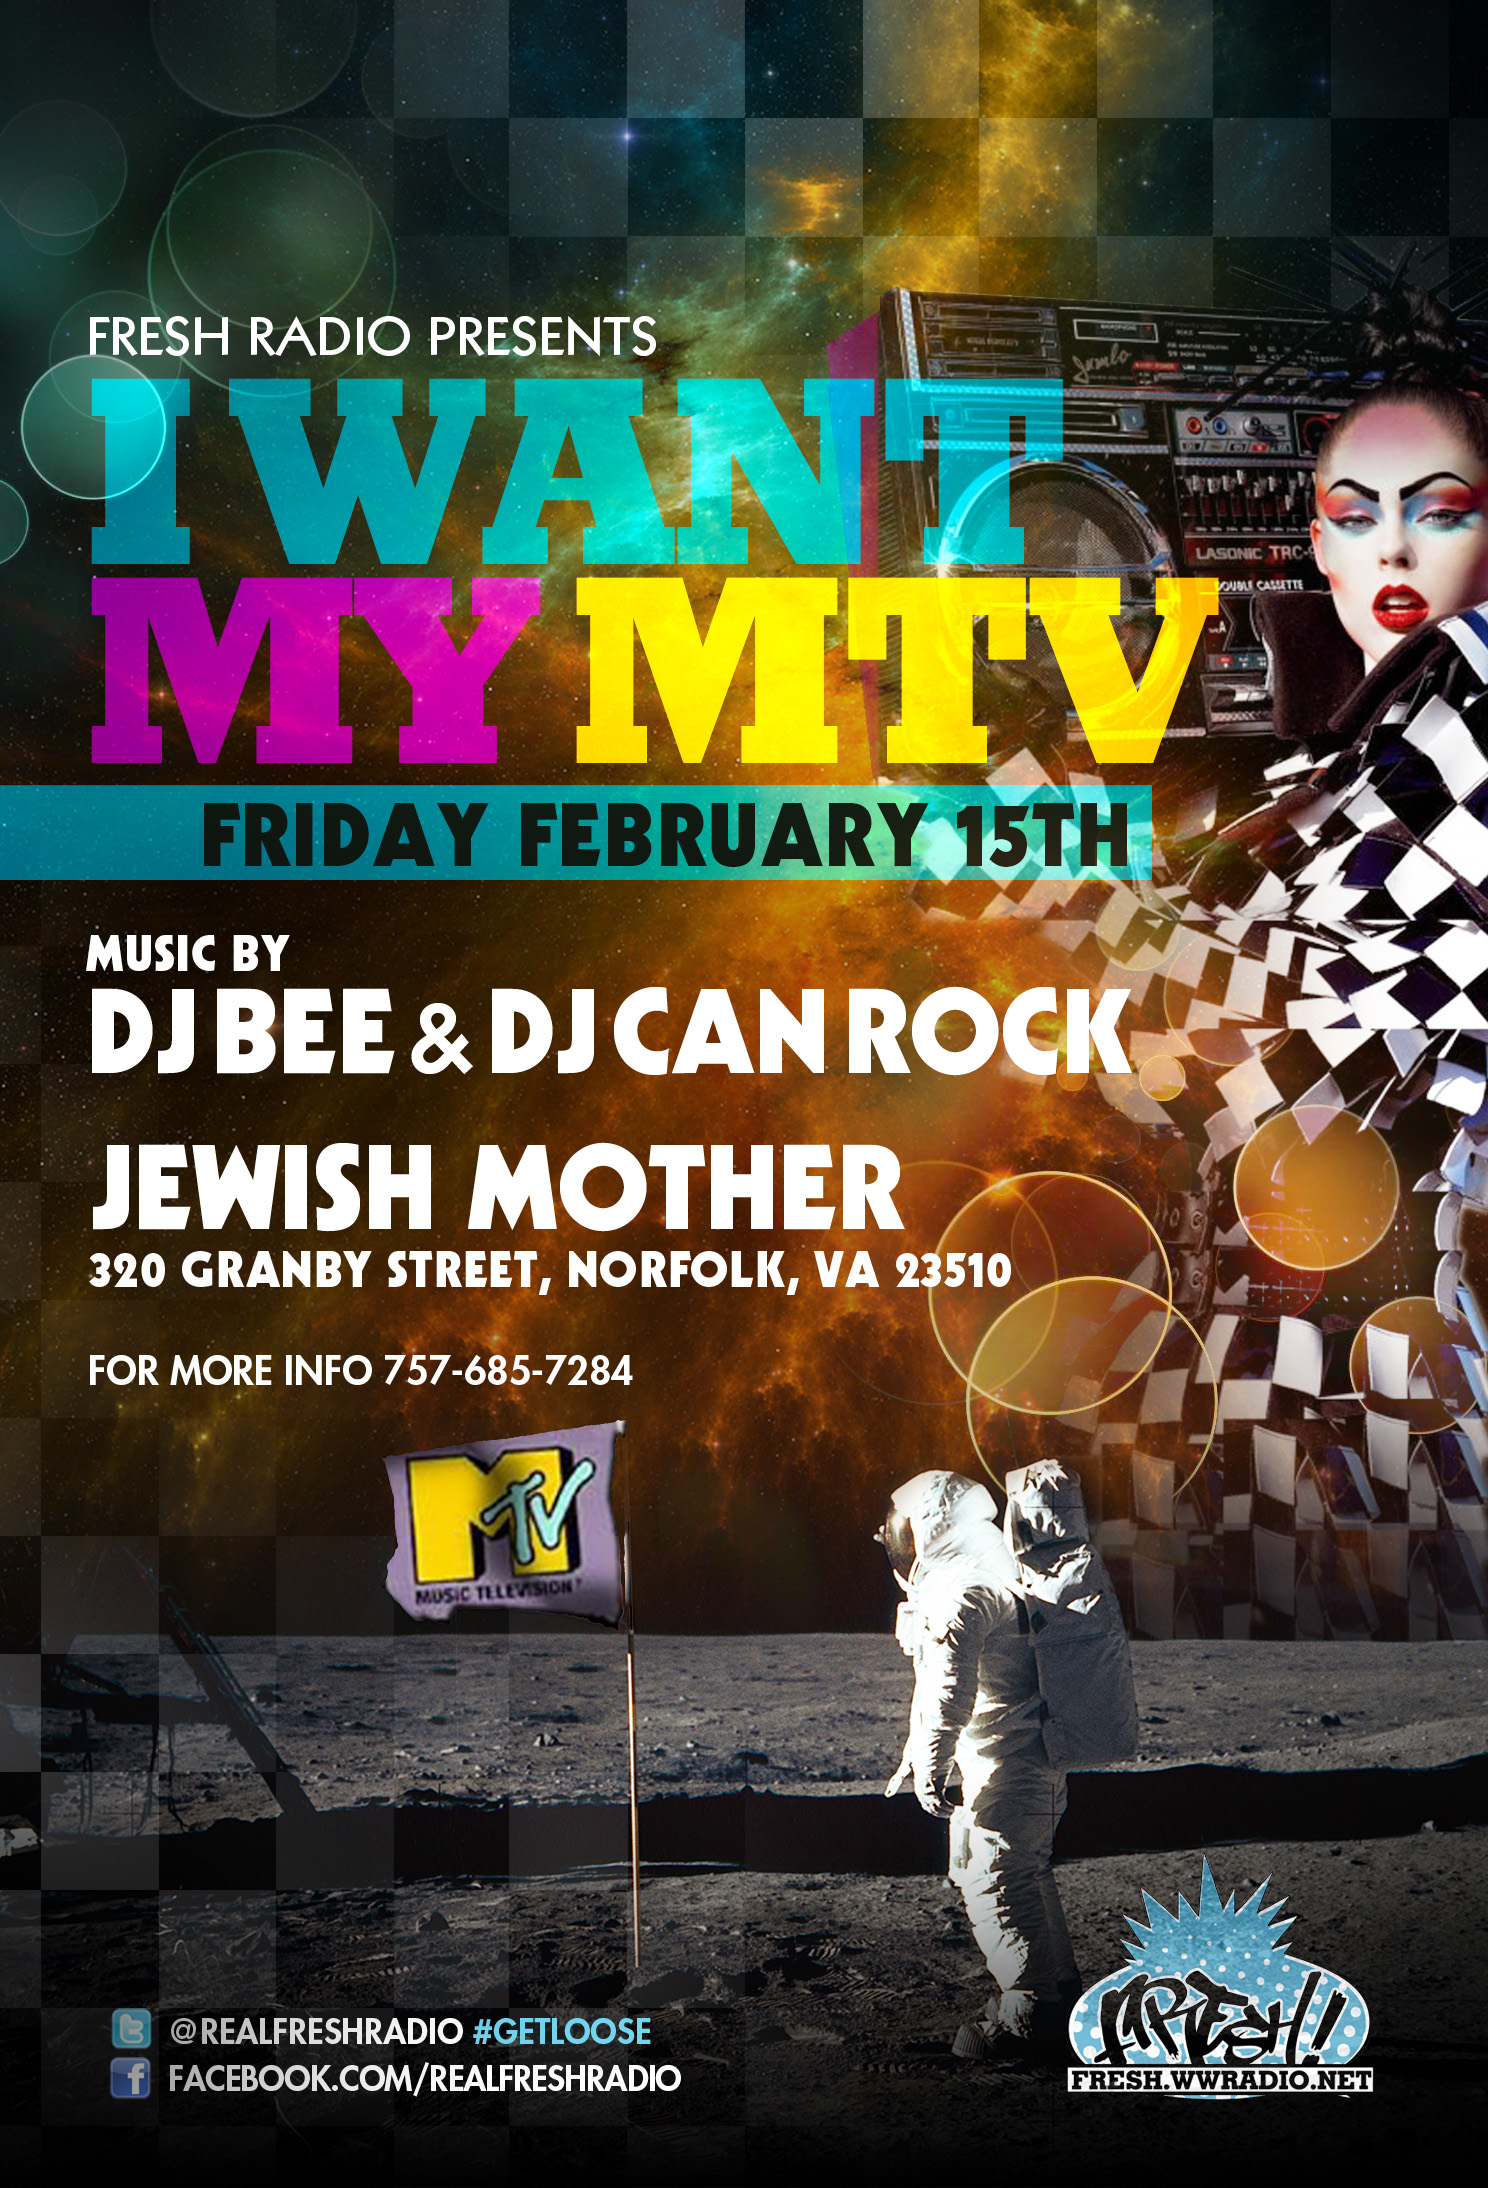 ilovemymtv_flyer